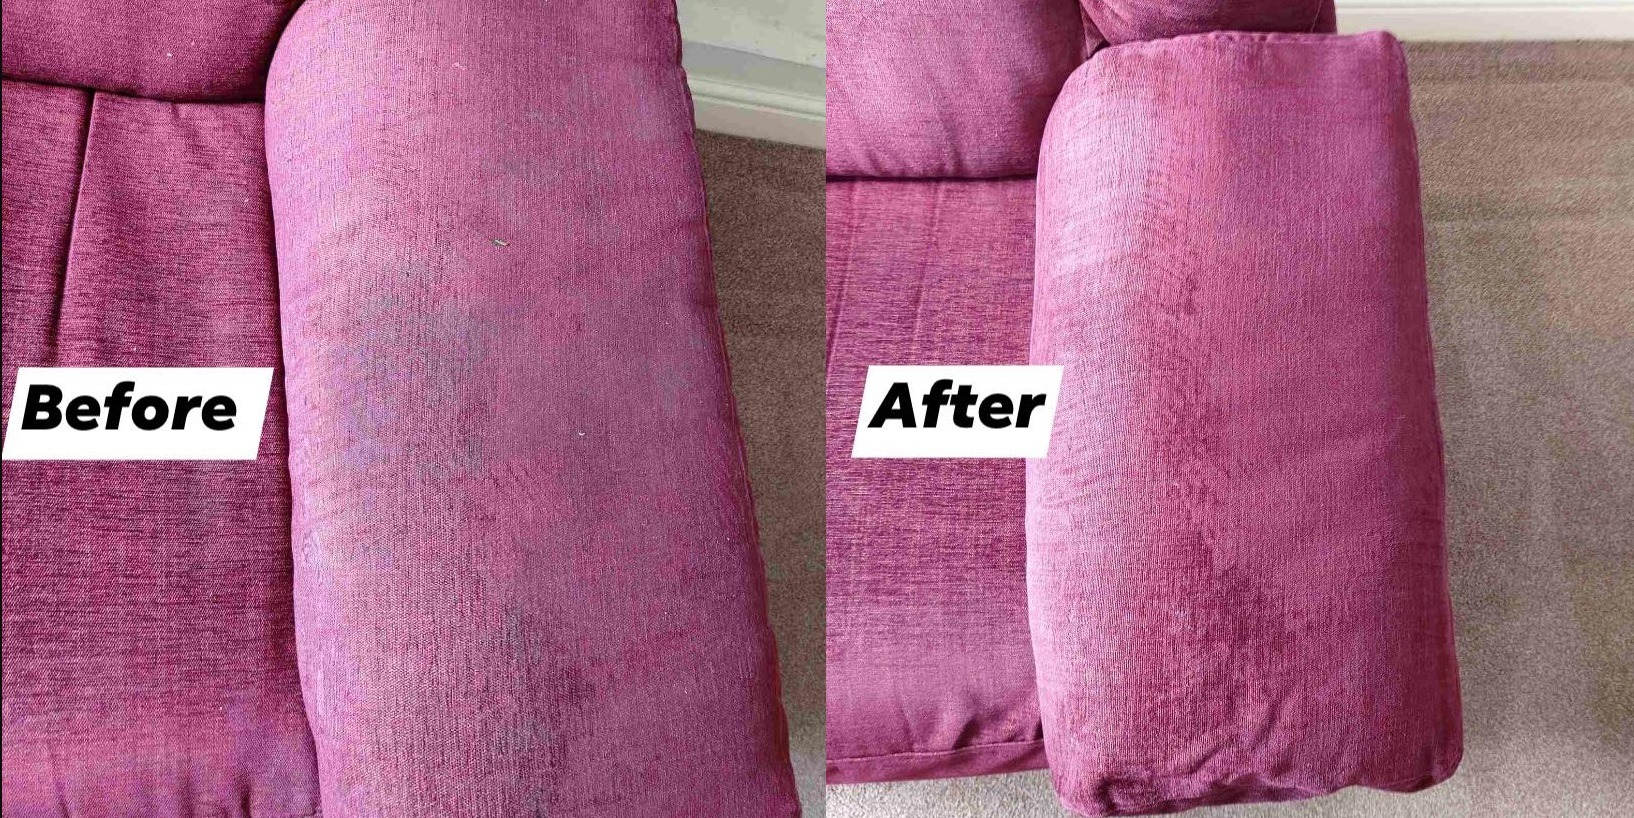 sofa upholstery cleaning service in Redditch and Bromsgrove